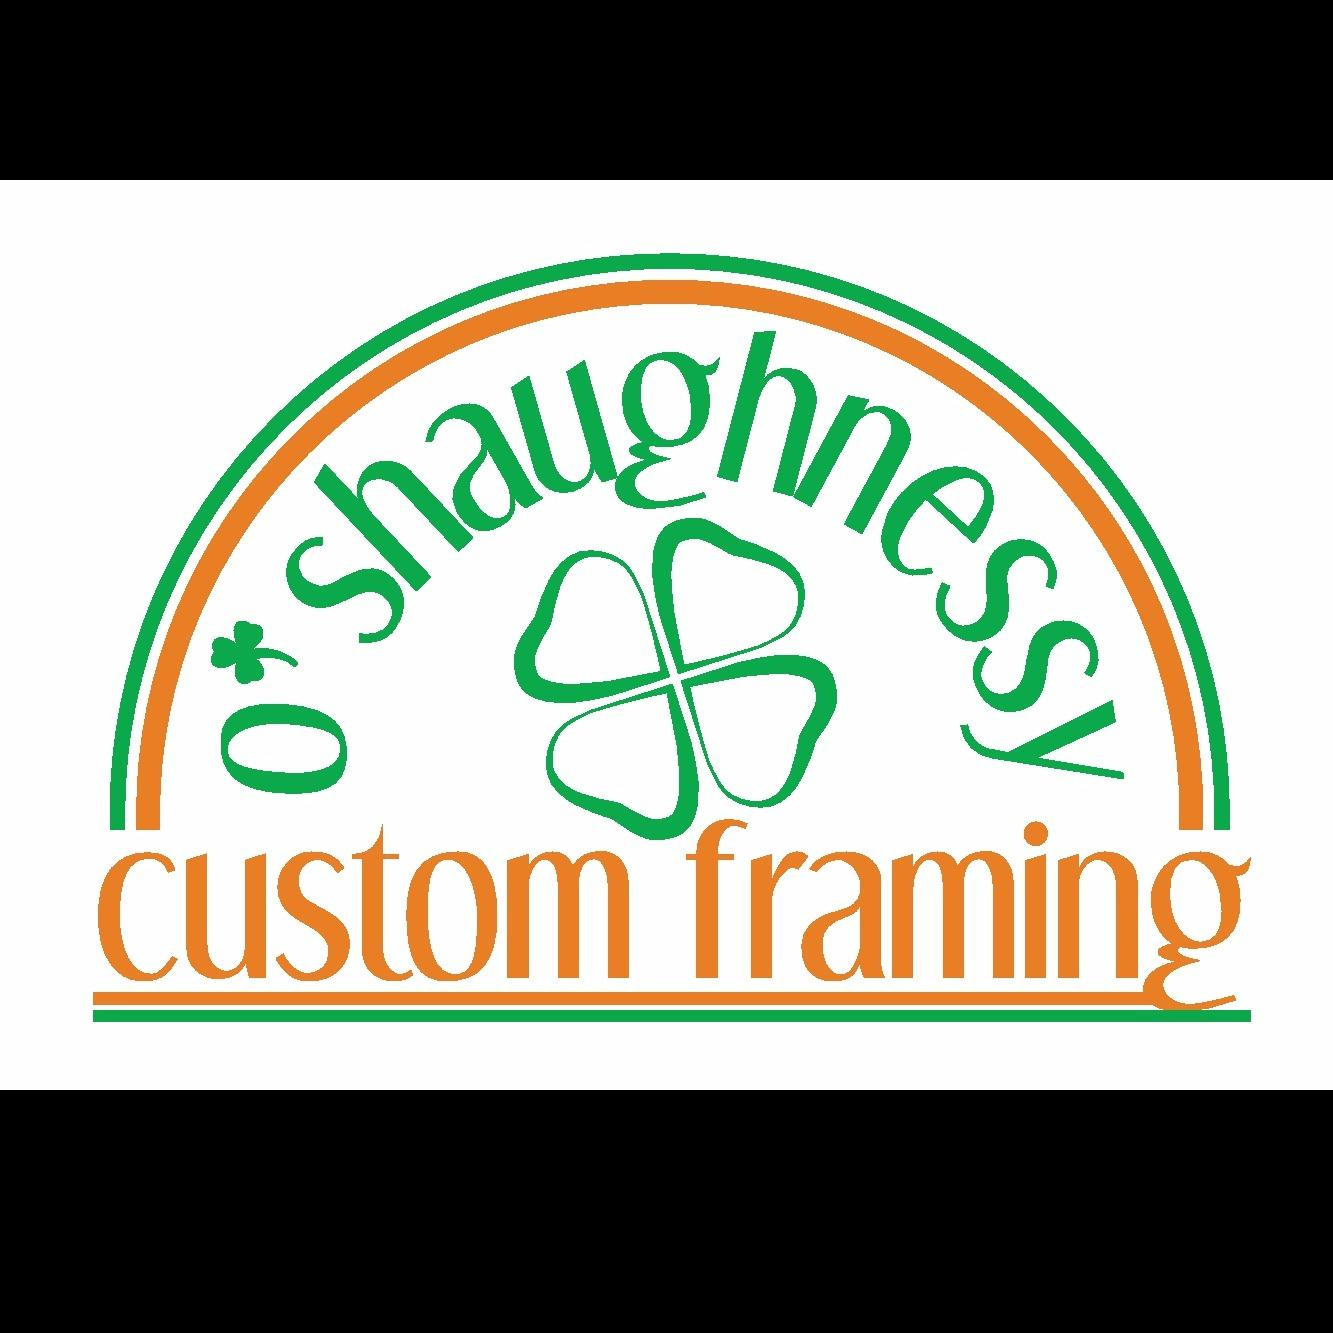 O'Shaughnessy Custom Framing